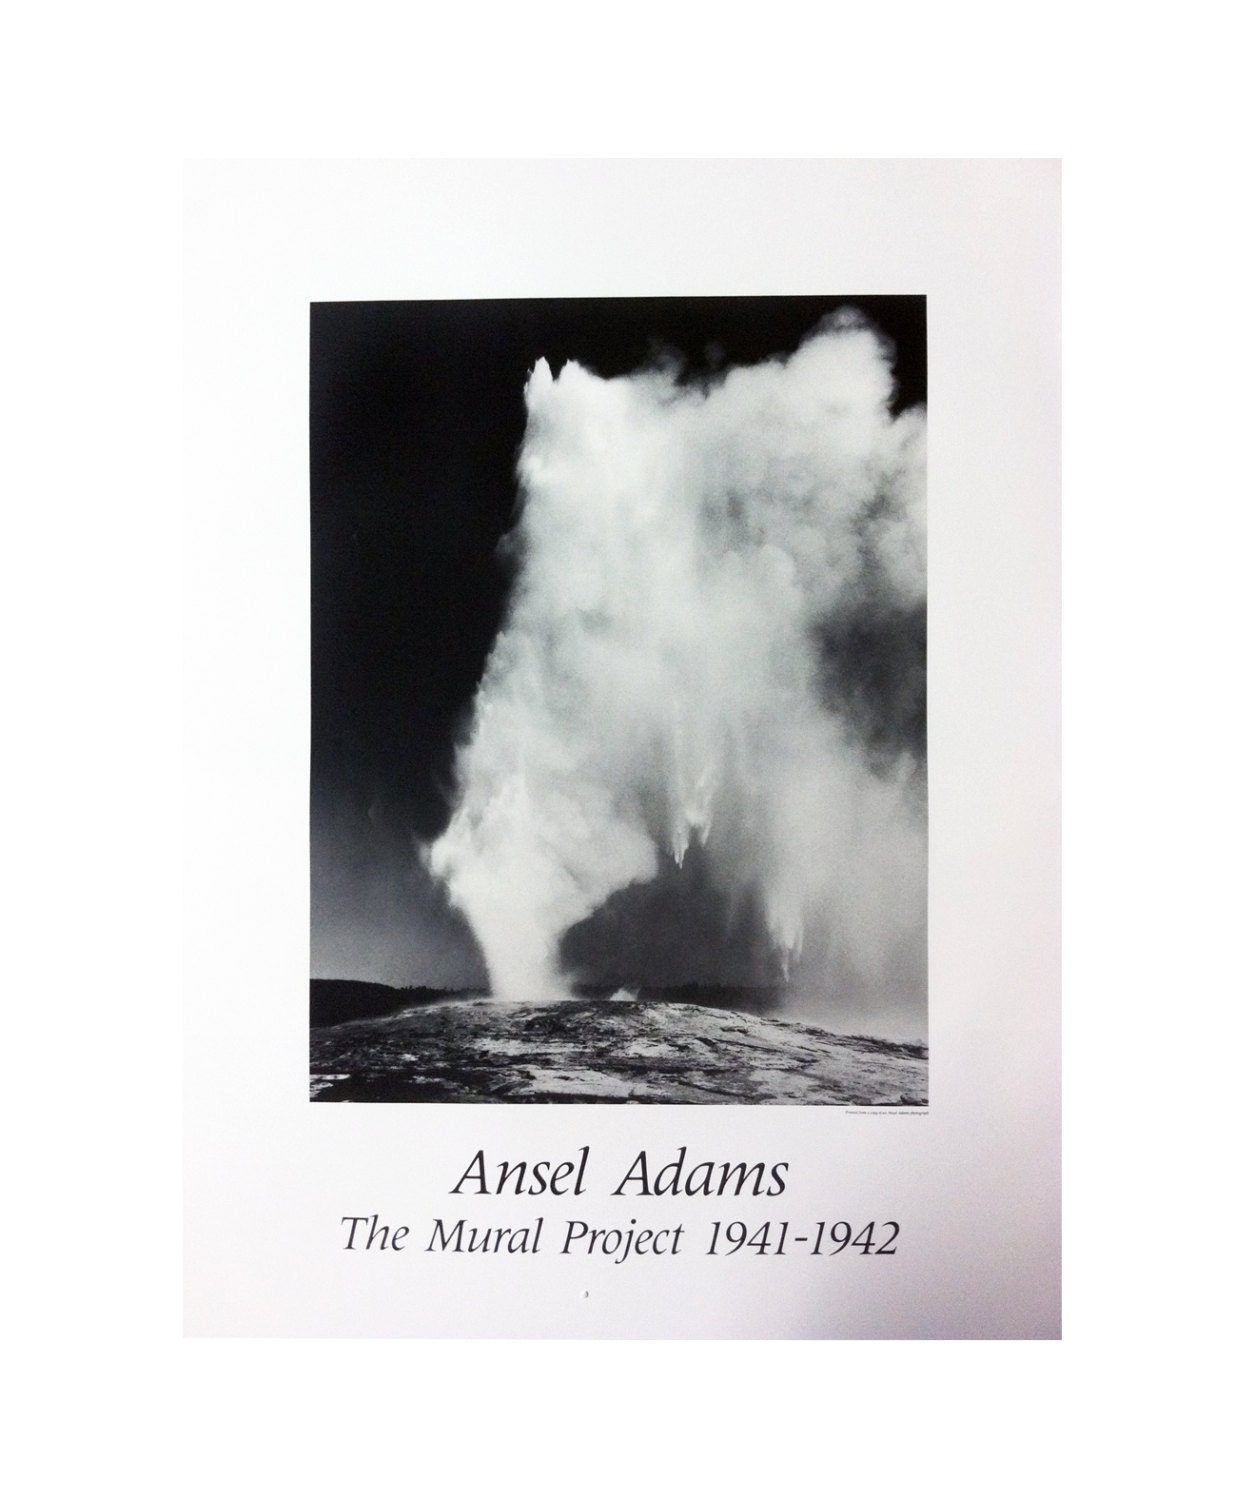 Vintage ansel adams old faithful geyser the mural for Ansel adams mural project 1941 to 1942